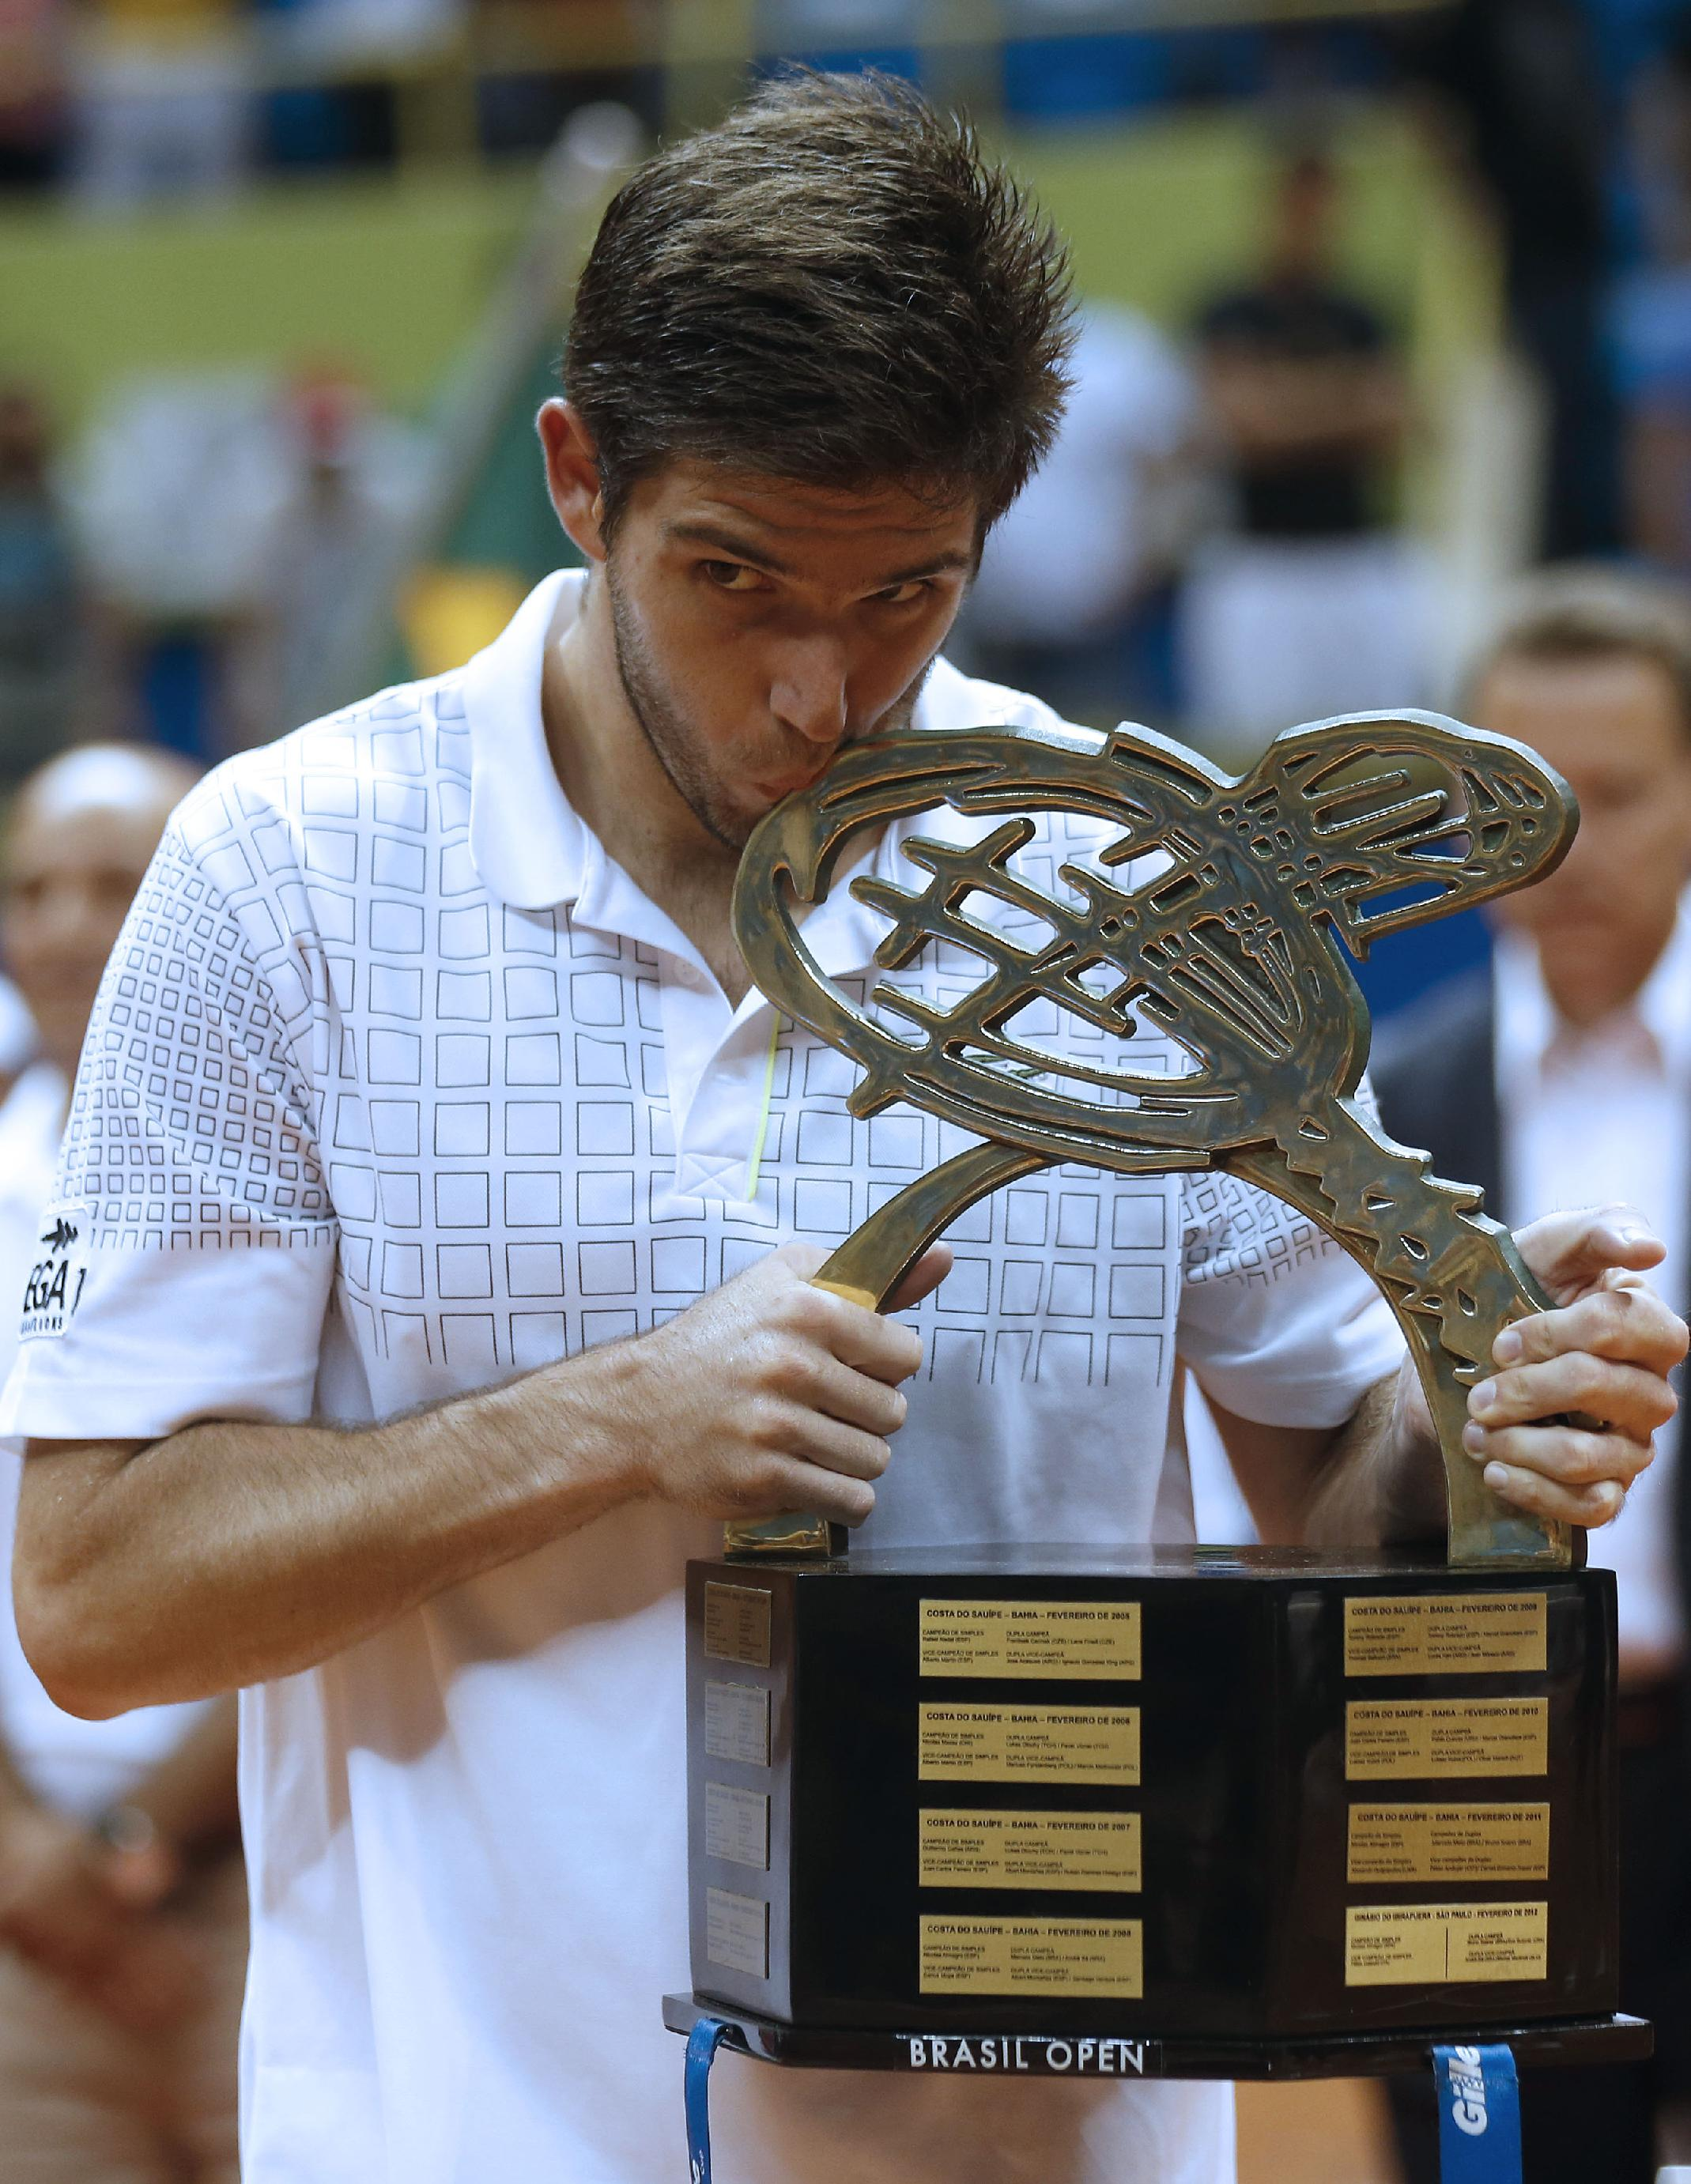 Argentina's Federico Delbonis kisses the Brazil Open ATP tennis trophy as he poses for pictures after defeating Italy's Paolo Lorenzi in Sao Paulo, Brazil, Sunday, March 2, 2014